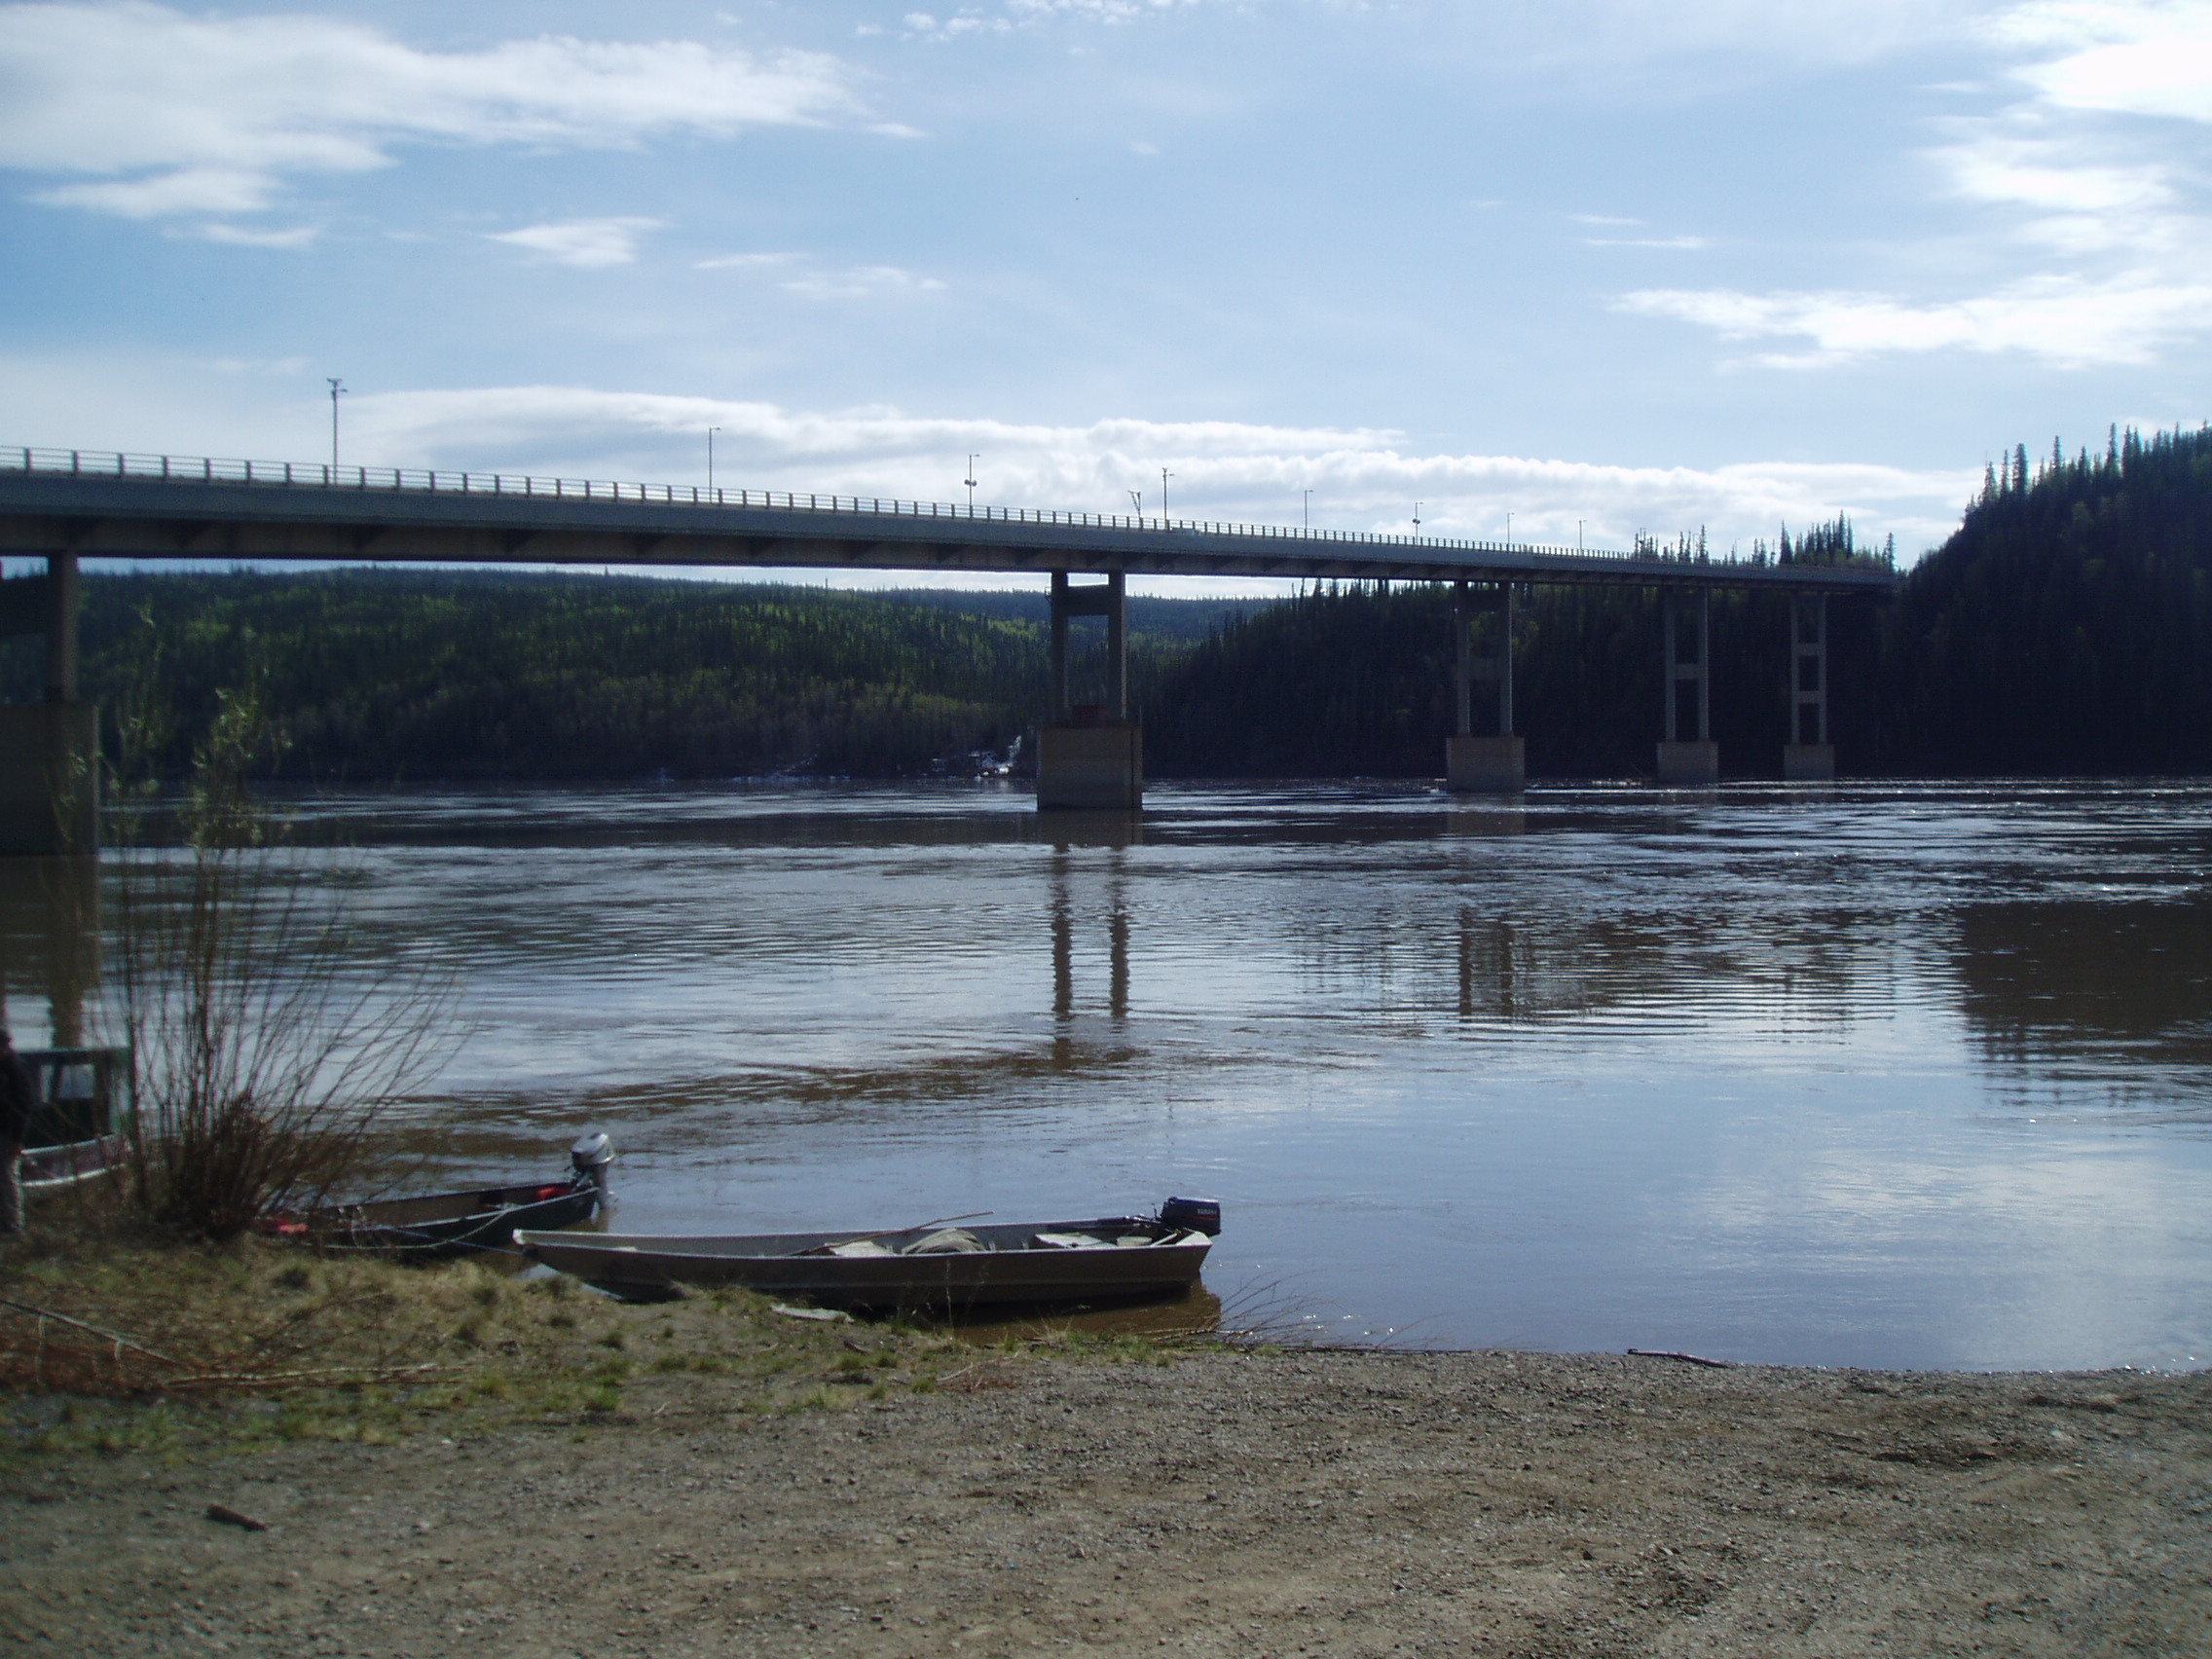 """Yukon River Overnight"" - We'll transport you to the mighty Yukon River. Stay at hotel or camp overnight. Arrive approx. 9:00 am. Depart the following day at approx. 7:00 pm."